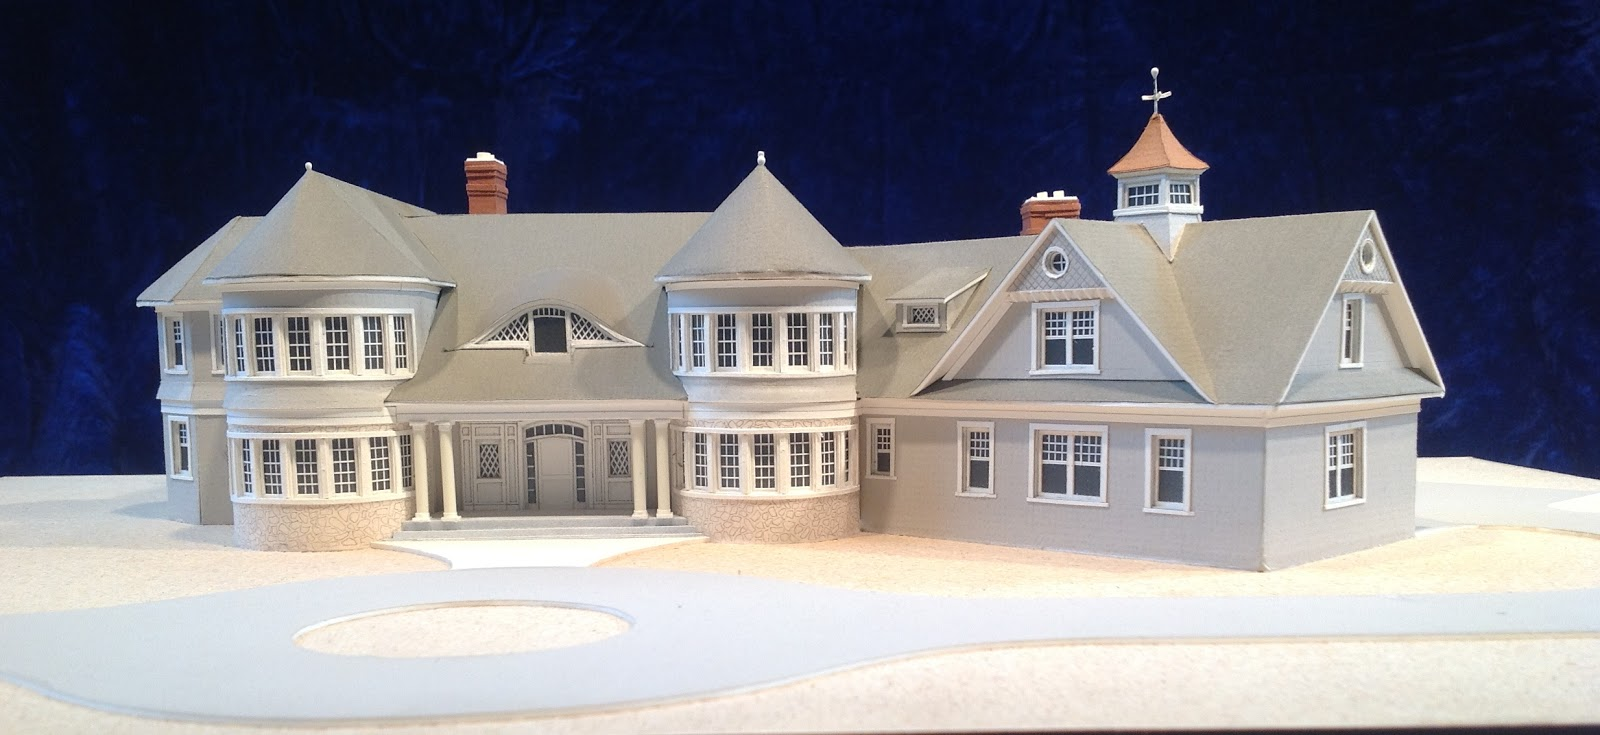 Architectural house models of houses in the hamptons long for Model house nyc